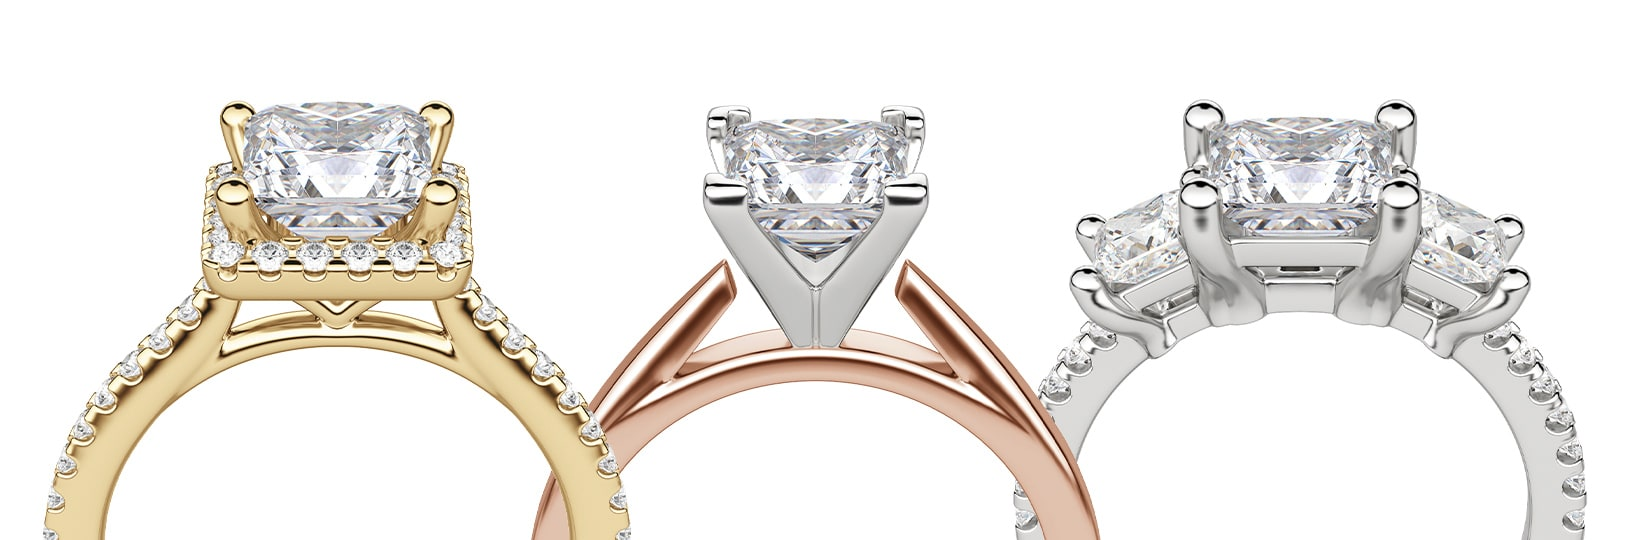 A princess cut simulated diamond featured in three different settings